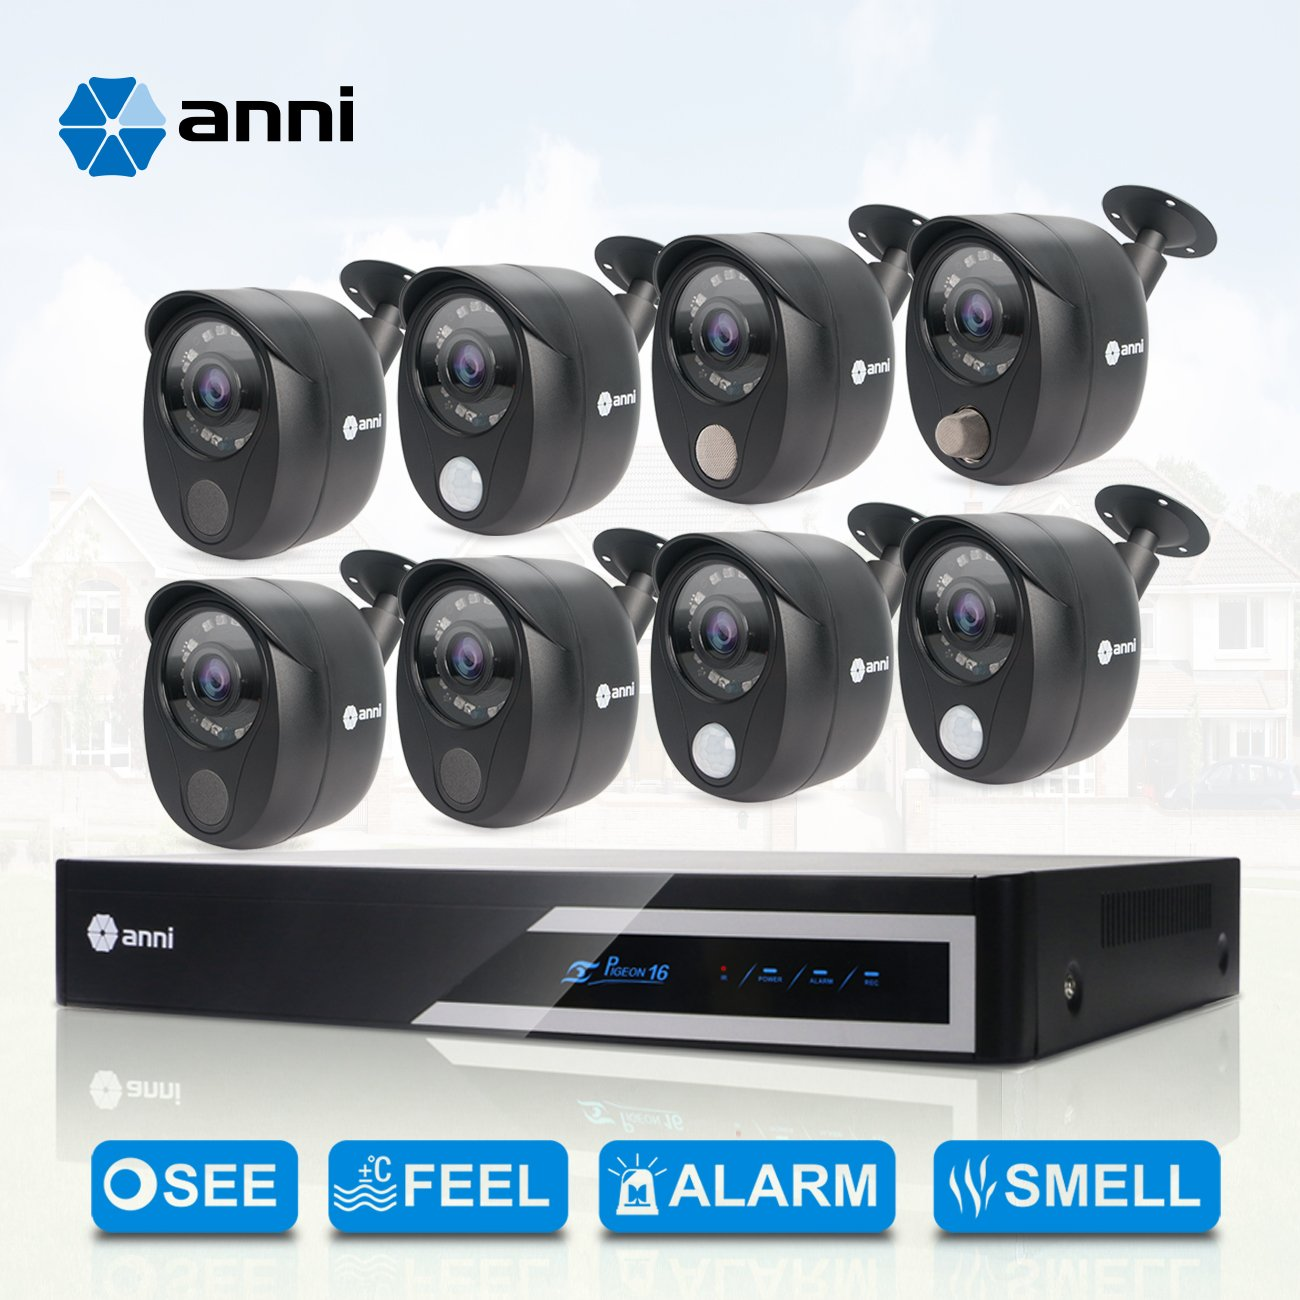 Anni 16 Channel HDMI 1080N CCTV Surveillance DVR kit, and 8 x Wired 1080p Security Cameras with Built-in Gas Detector, PIR Heat-Based Sensor, Siren ...